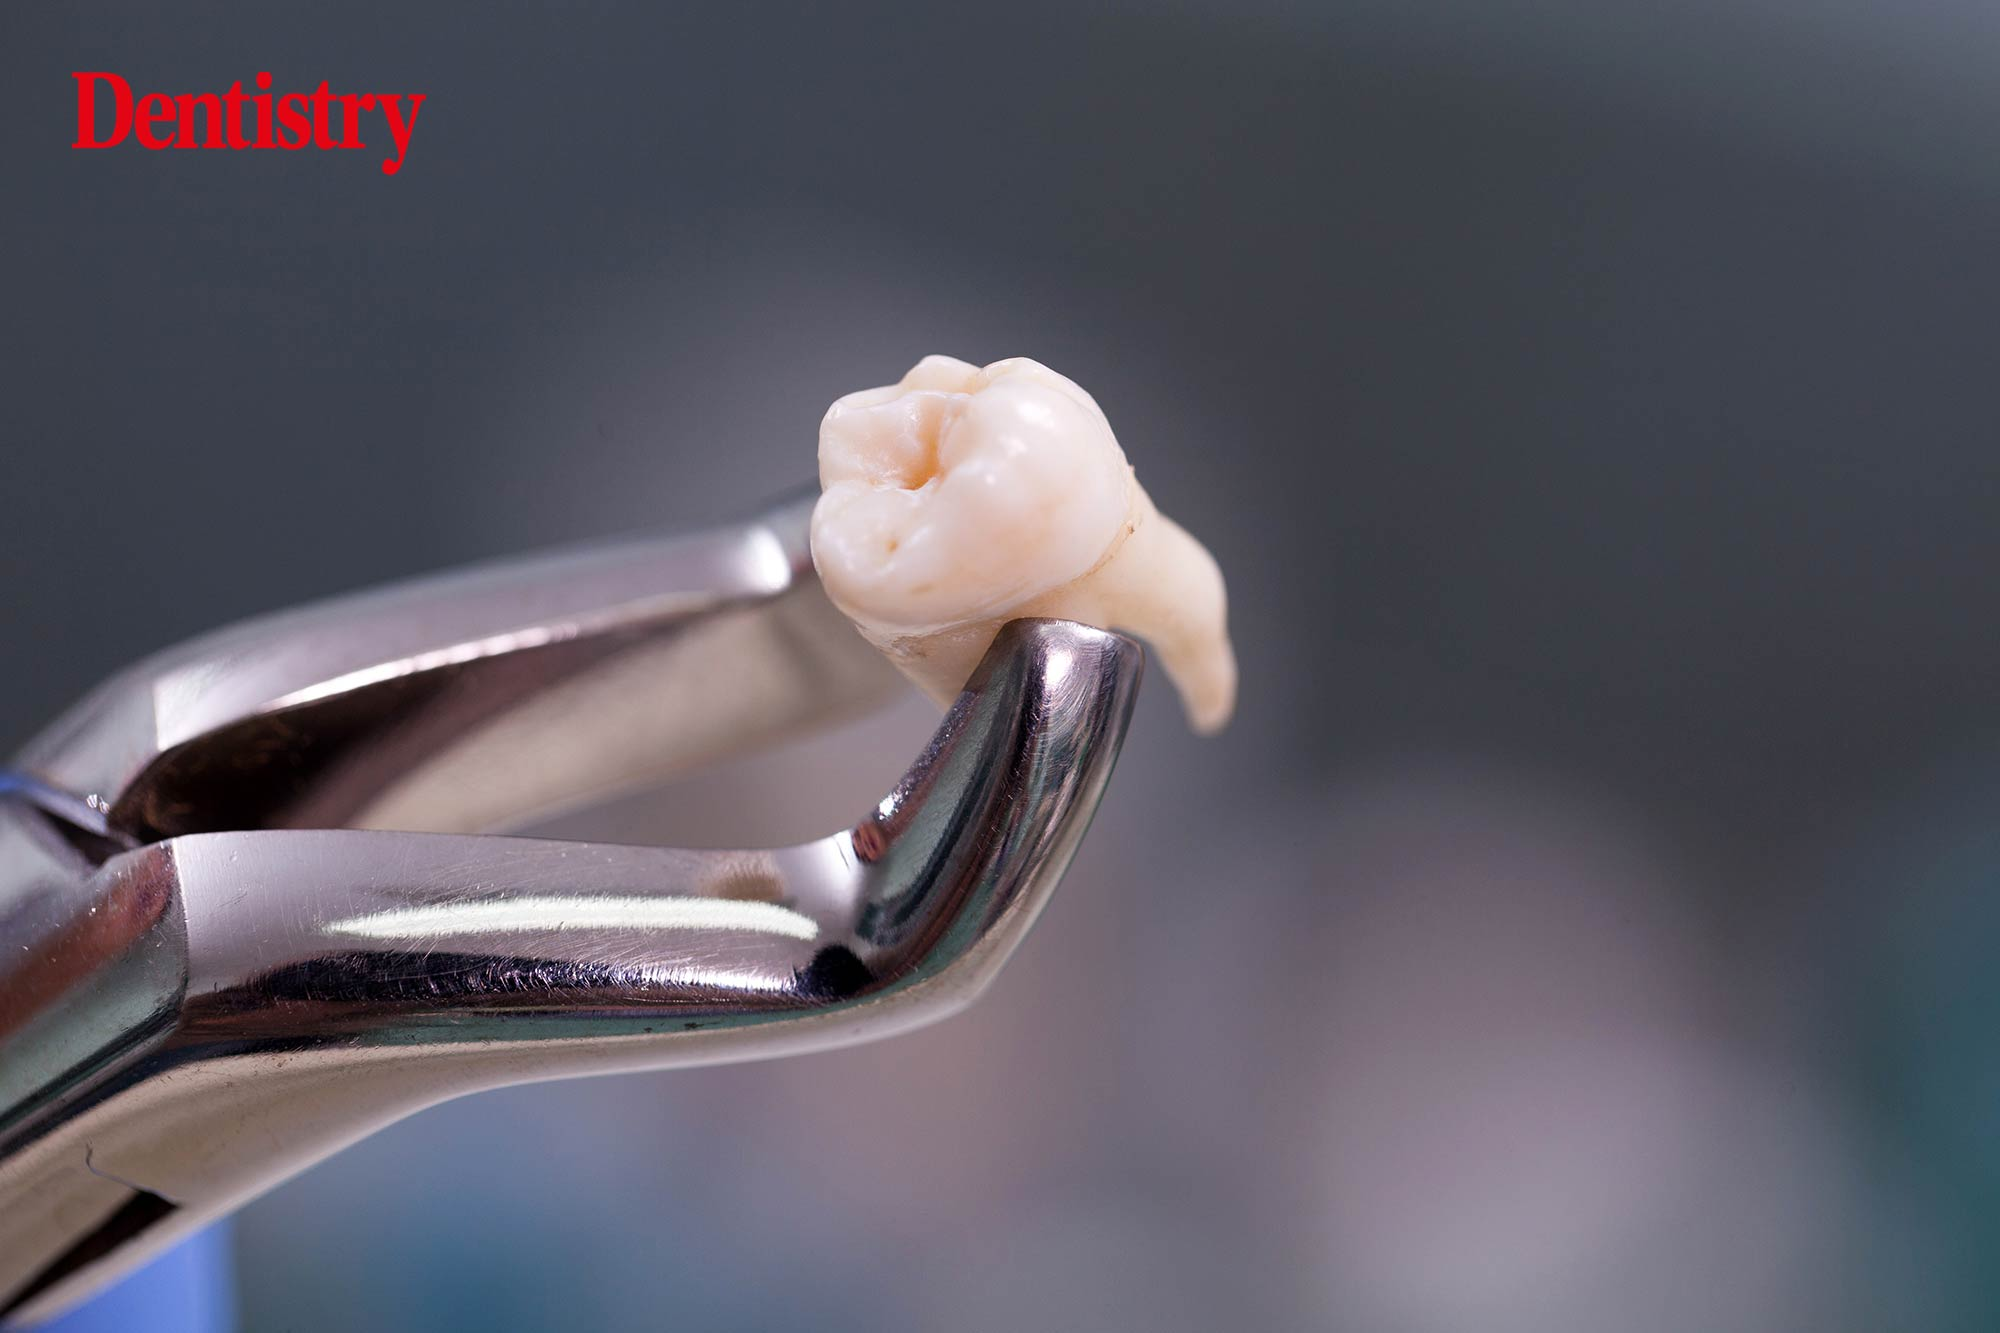 Wrong tooth extractions have been removed from the NHS's Never Event list, it has been confirmed